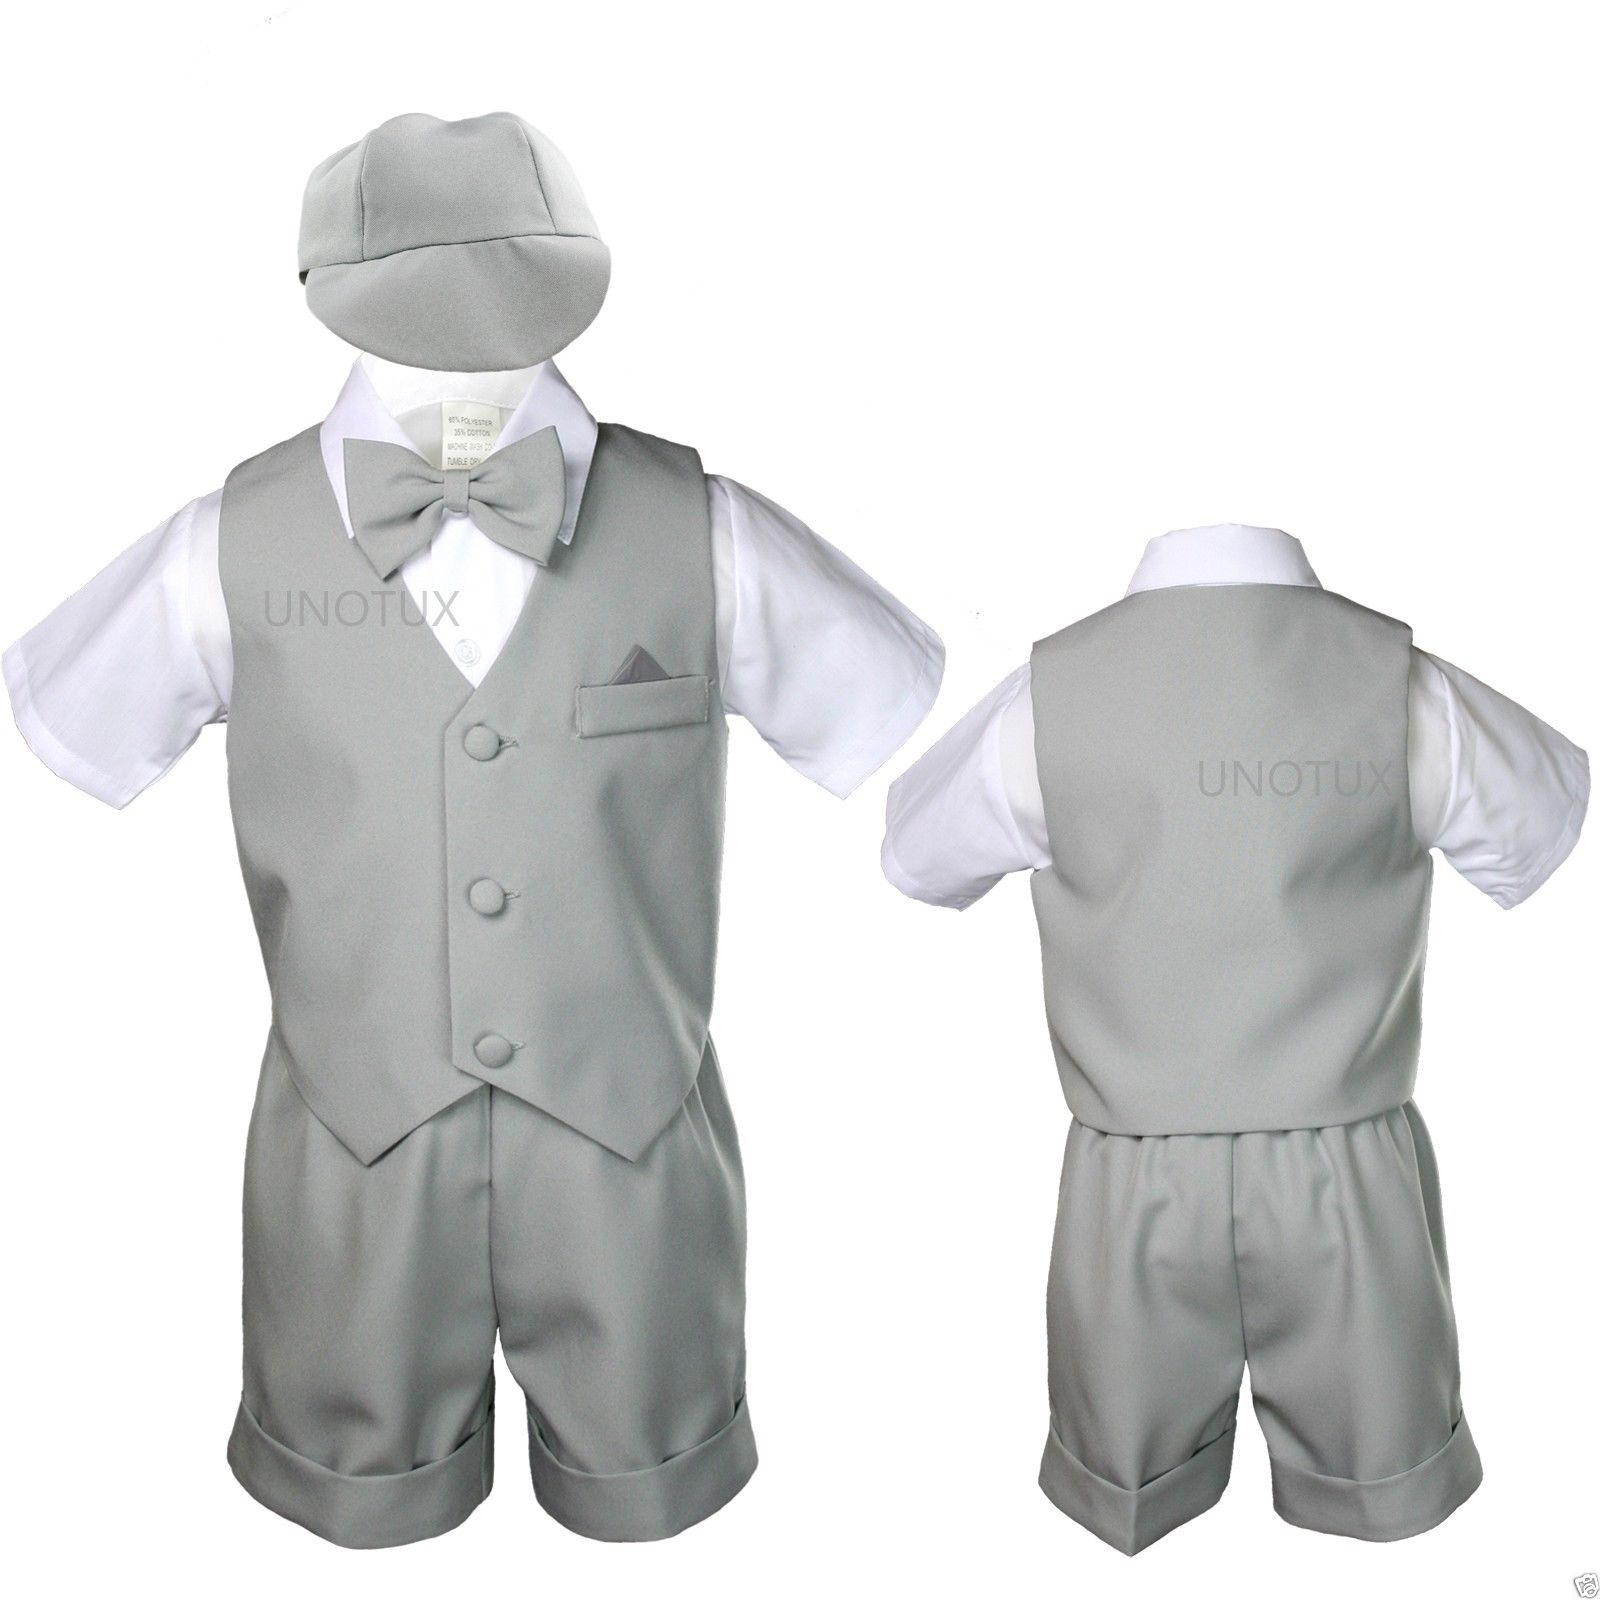 Silver Baby Infant Boy Toddler Formal Eton Suit Vest Set Shorts S M L XL 2T - 4T